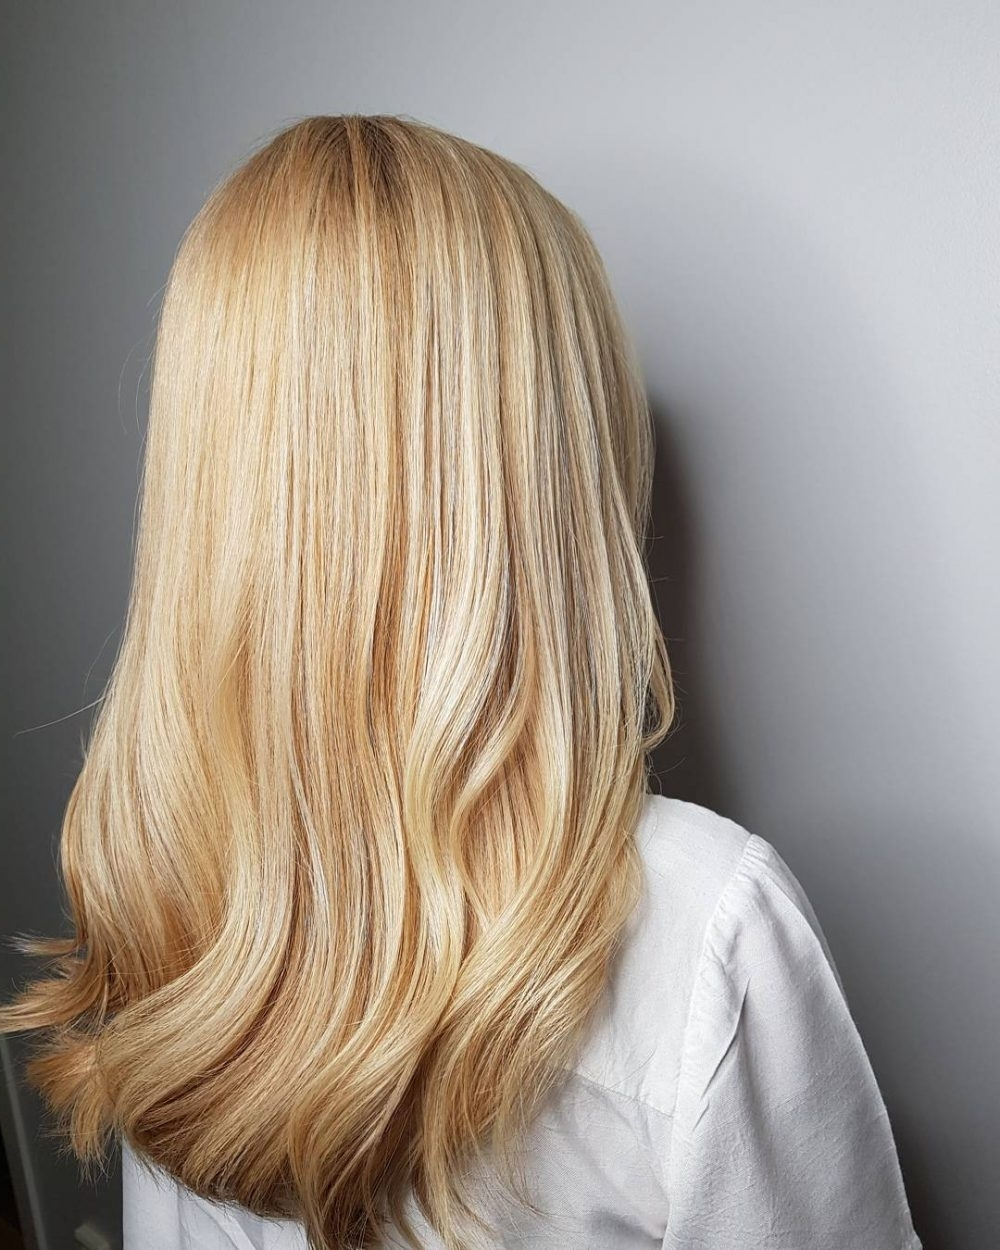 21 Hottest Honey Blonde Hair Color Ideas Of 2018 Regarding Well Known Cream Colored Bob Blonde Hairstyles (View 3 of 20)